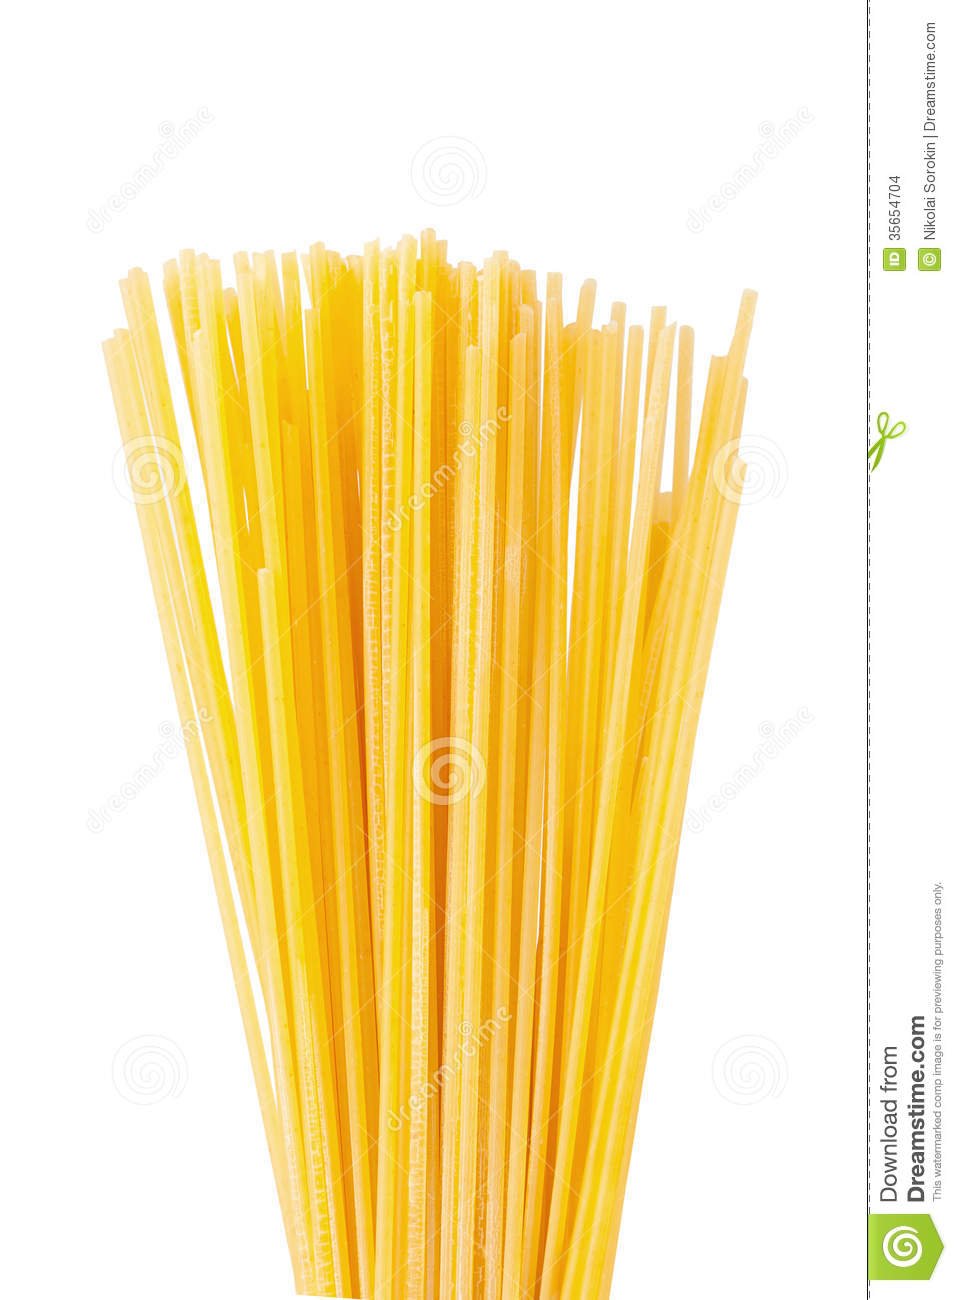 Dry Spaghetti Stock Images - Image: 35654704